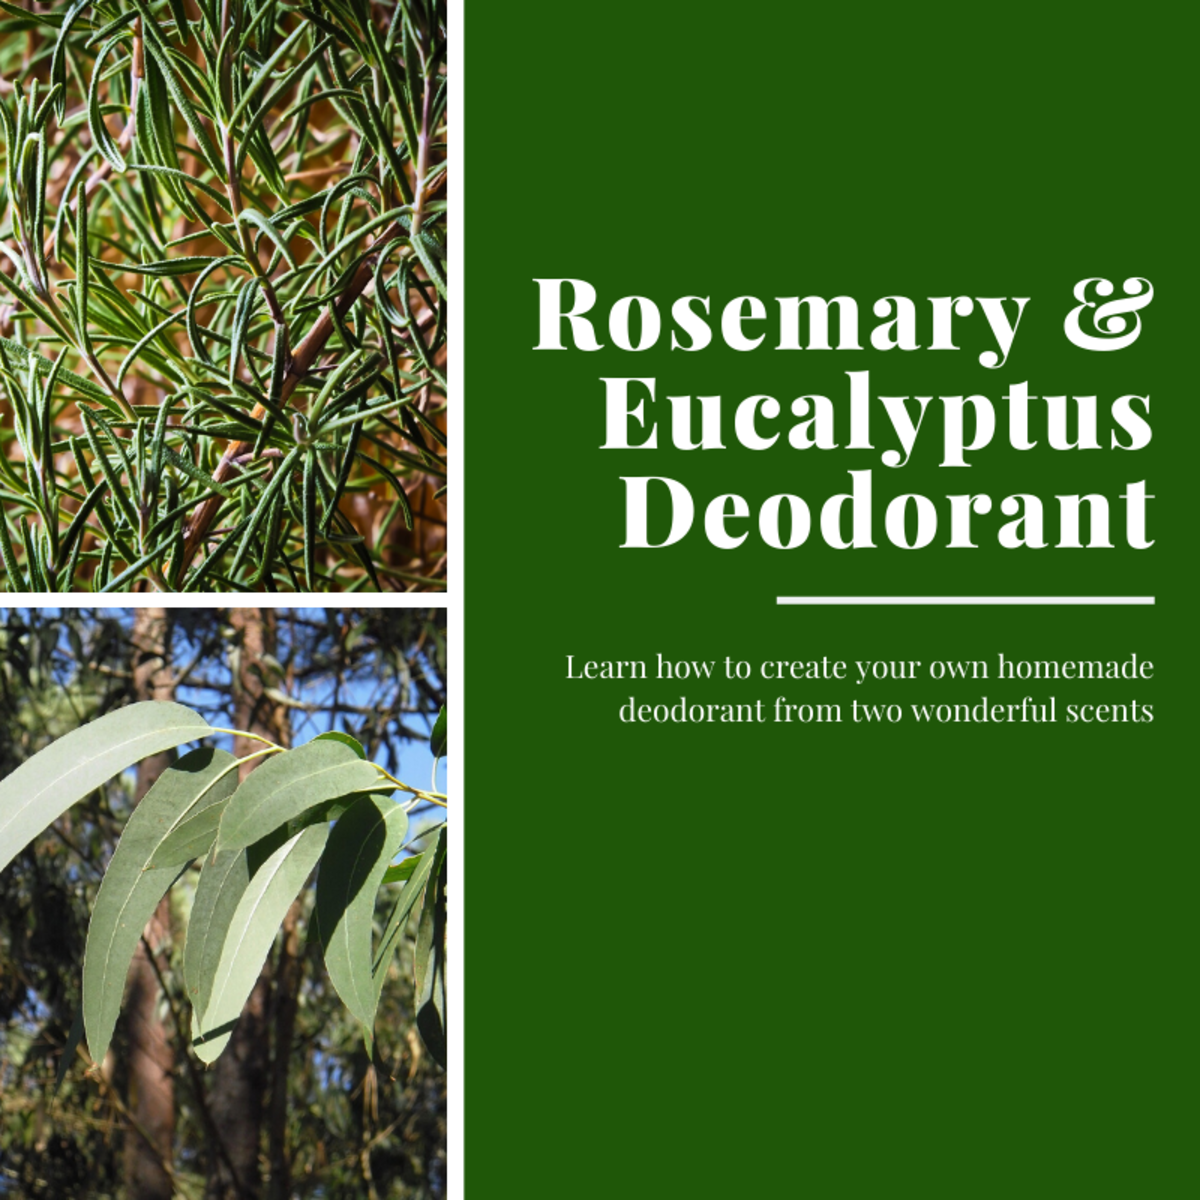 This article will show you how to craft your own homemade deodorant from rosemary and eucalyptus essential oils.